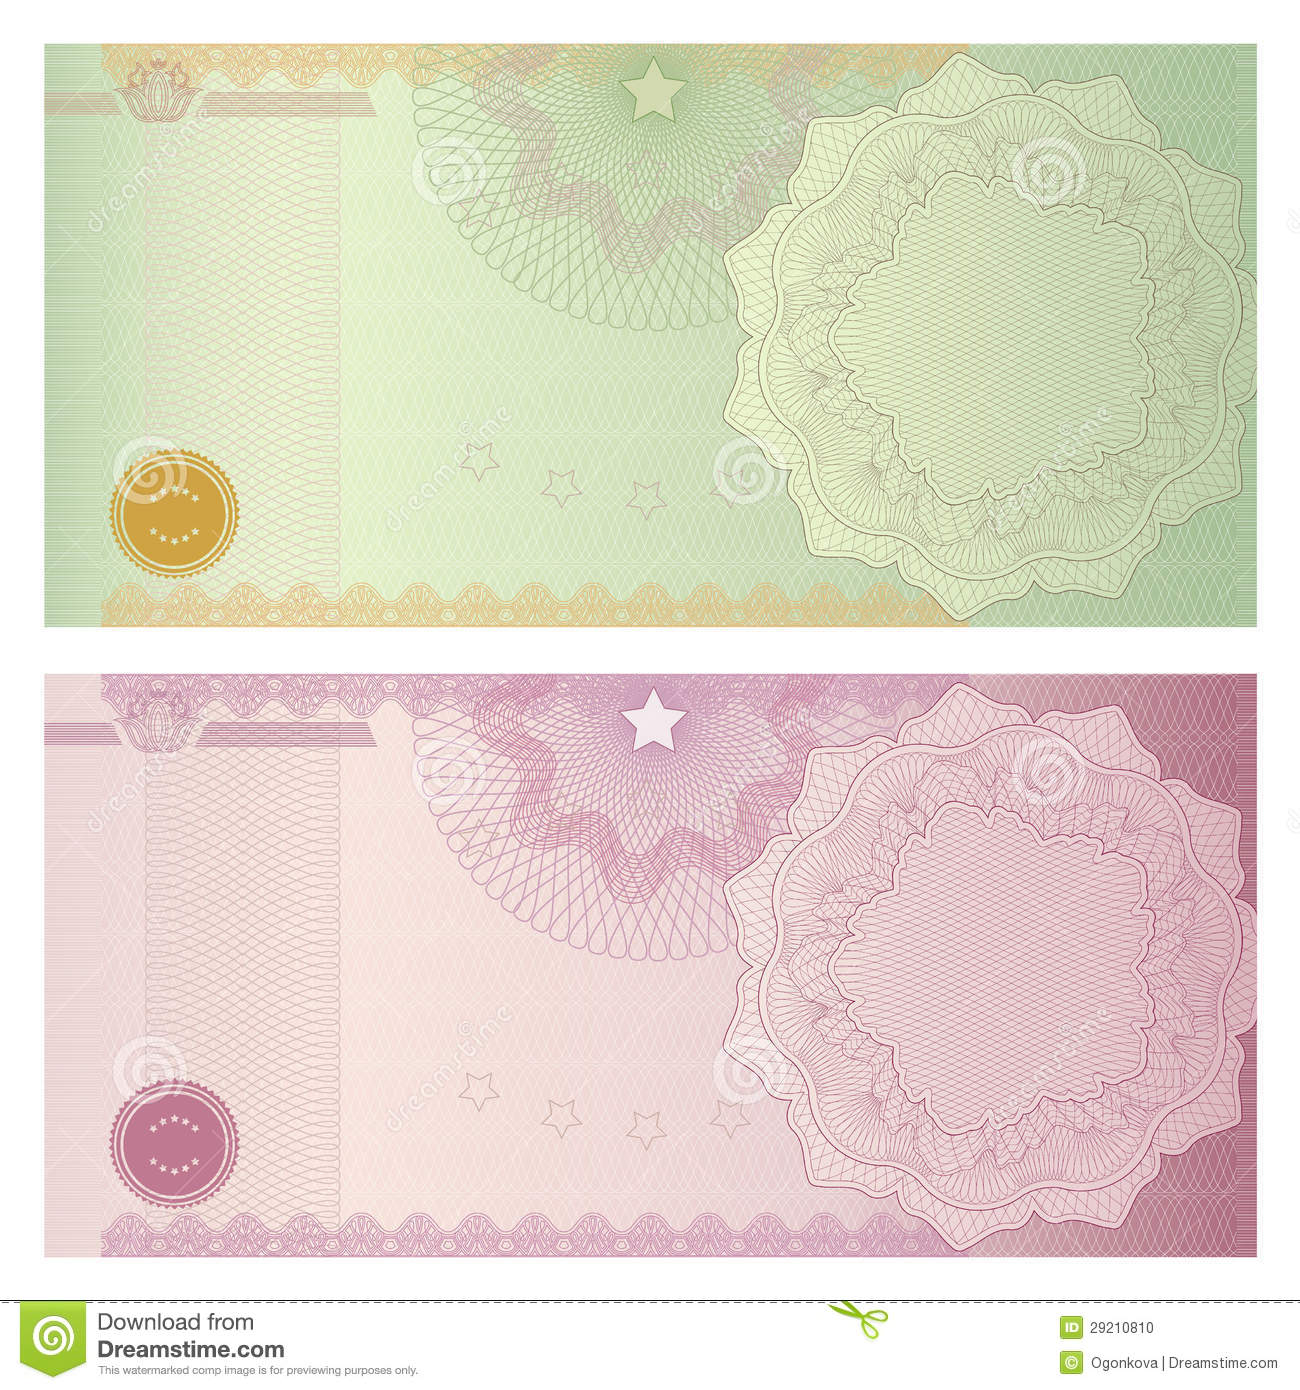 voucher coupon template with guilloche pattern vector illustration